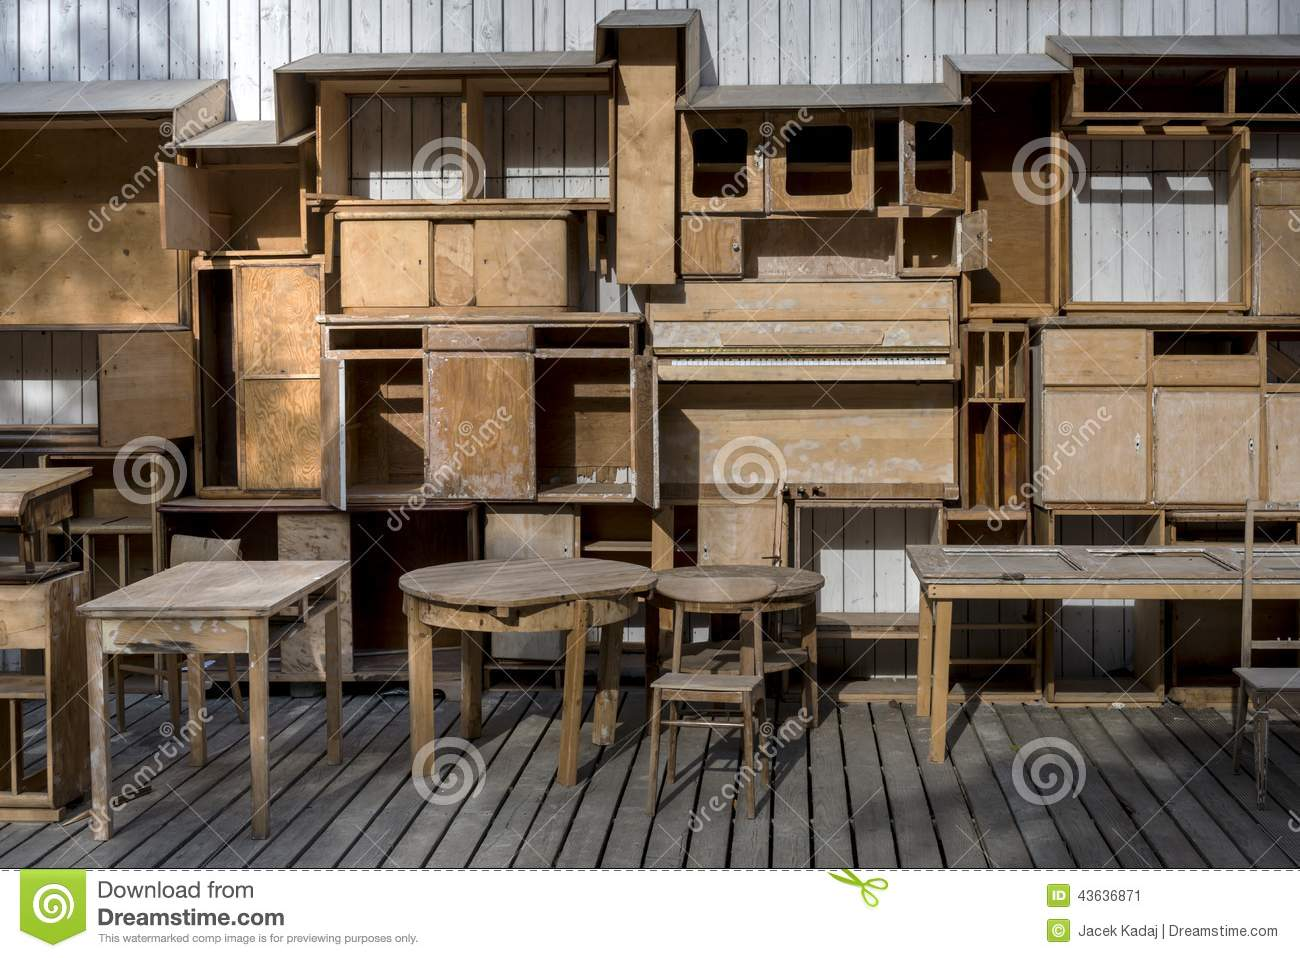 Empty Wood Shelfs And Old Vintage Furniture Stock Image - Image: 43636871